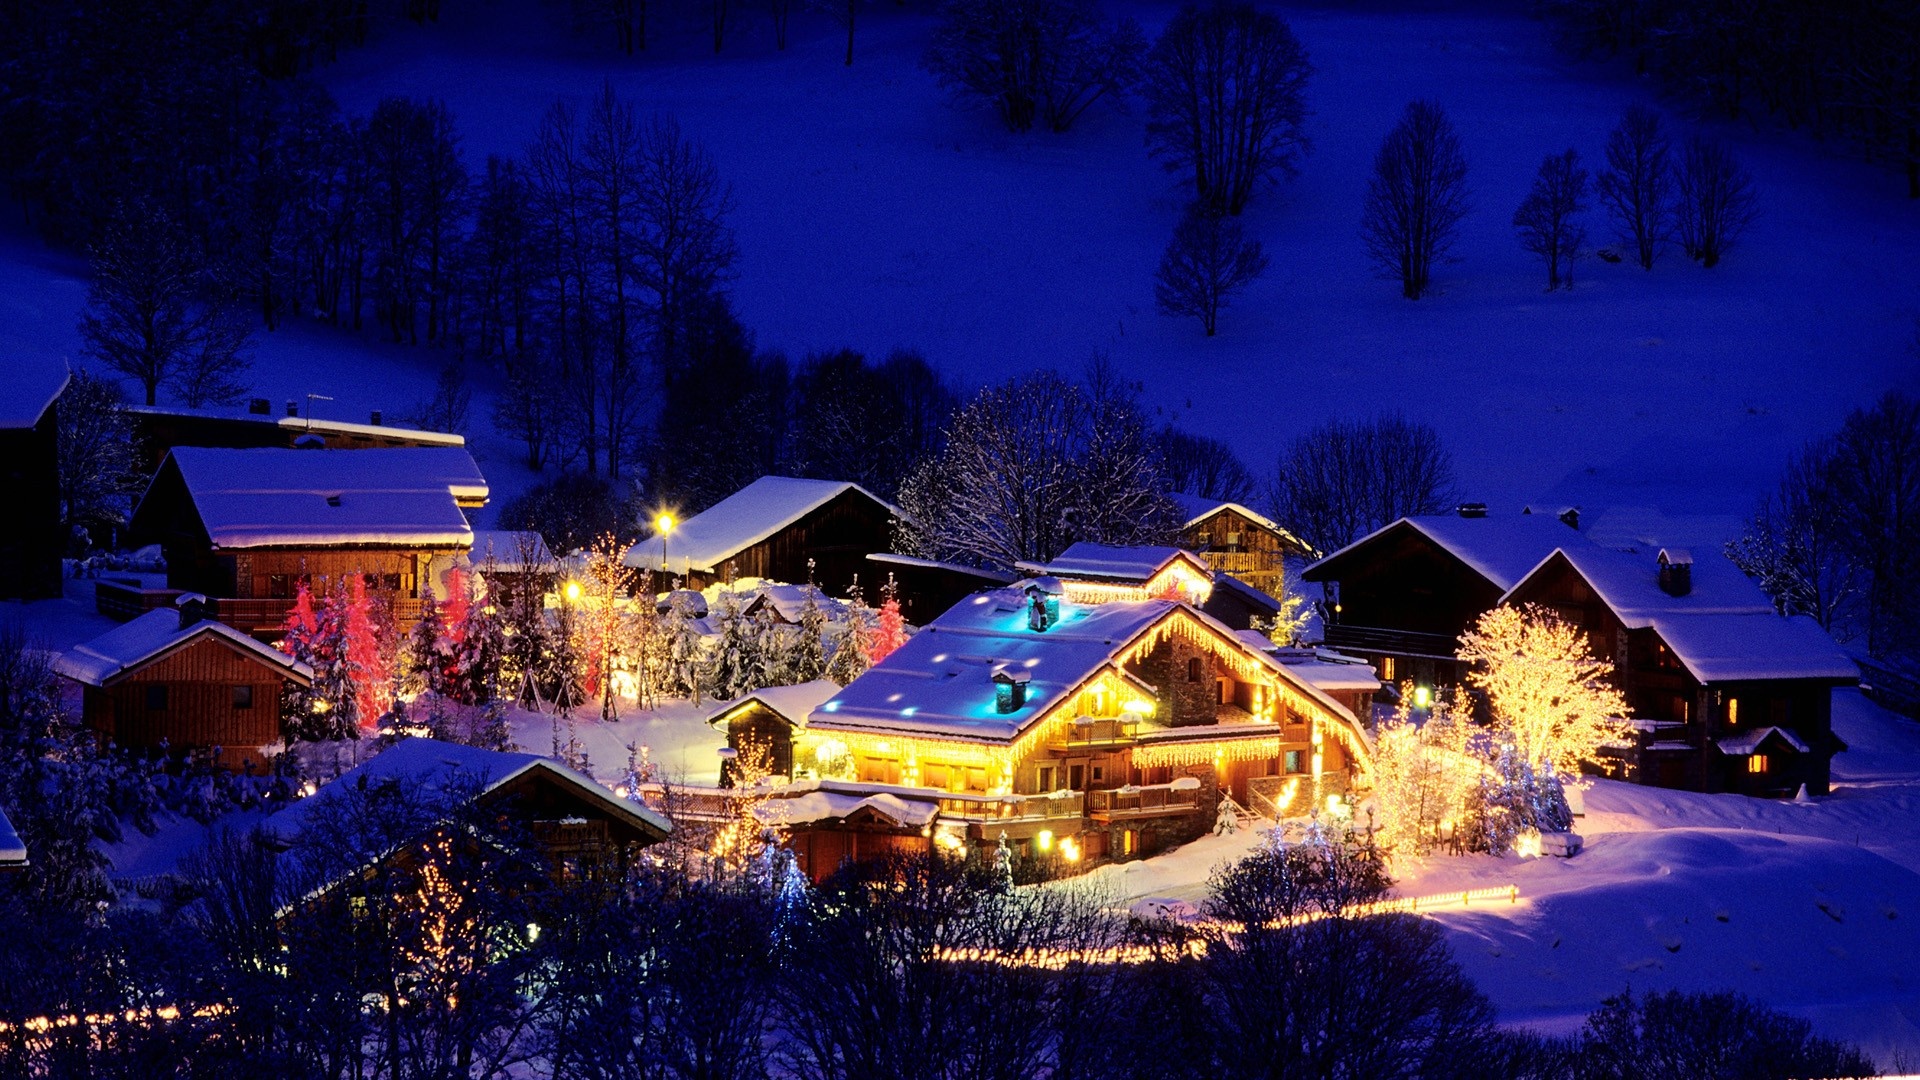 Christmas Wallpapers - Christmas In A Village , HD Wallpaper & Backgrounds